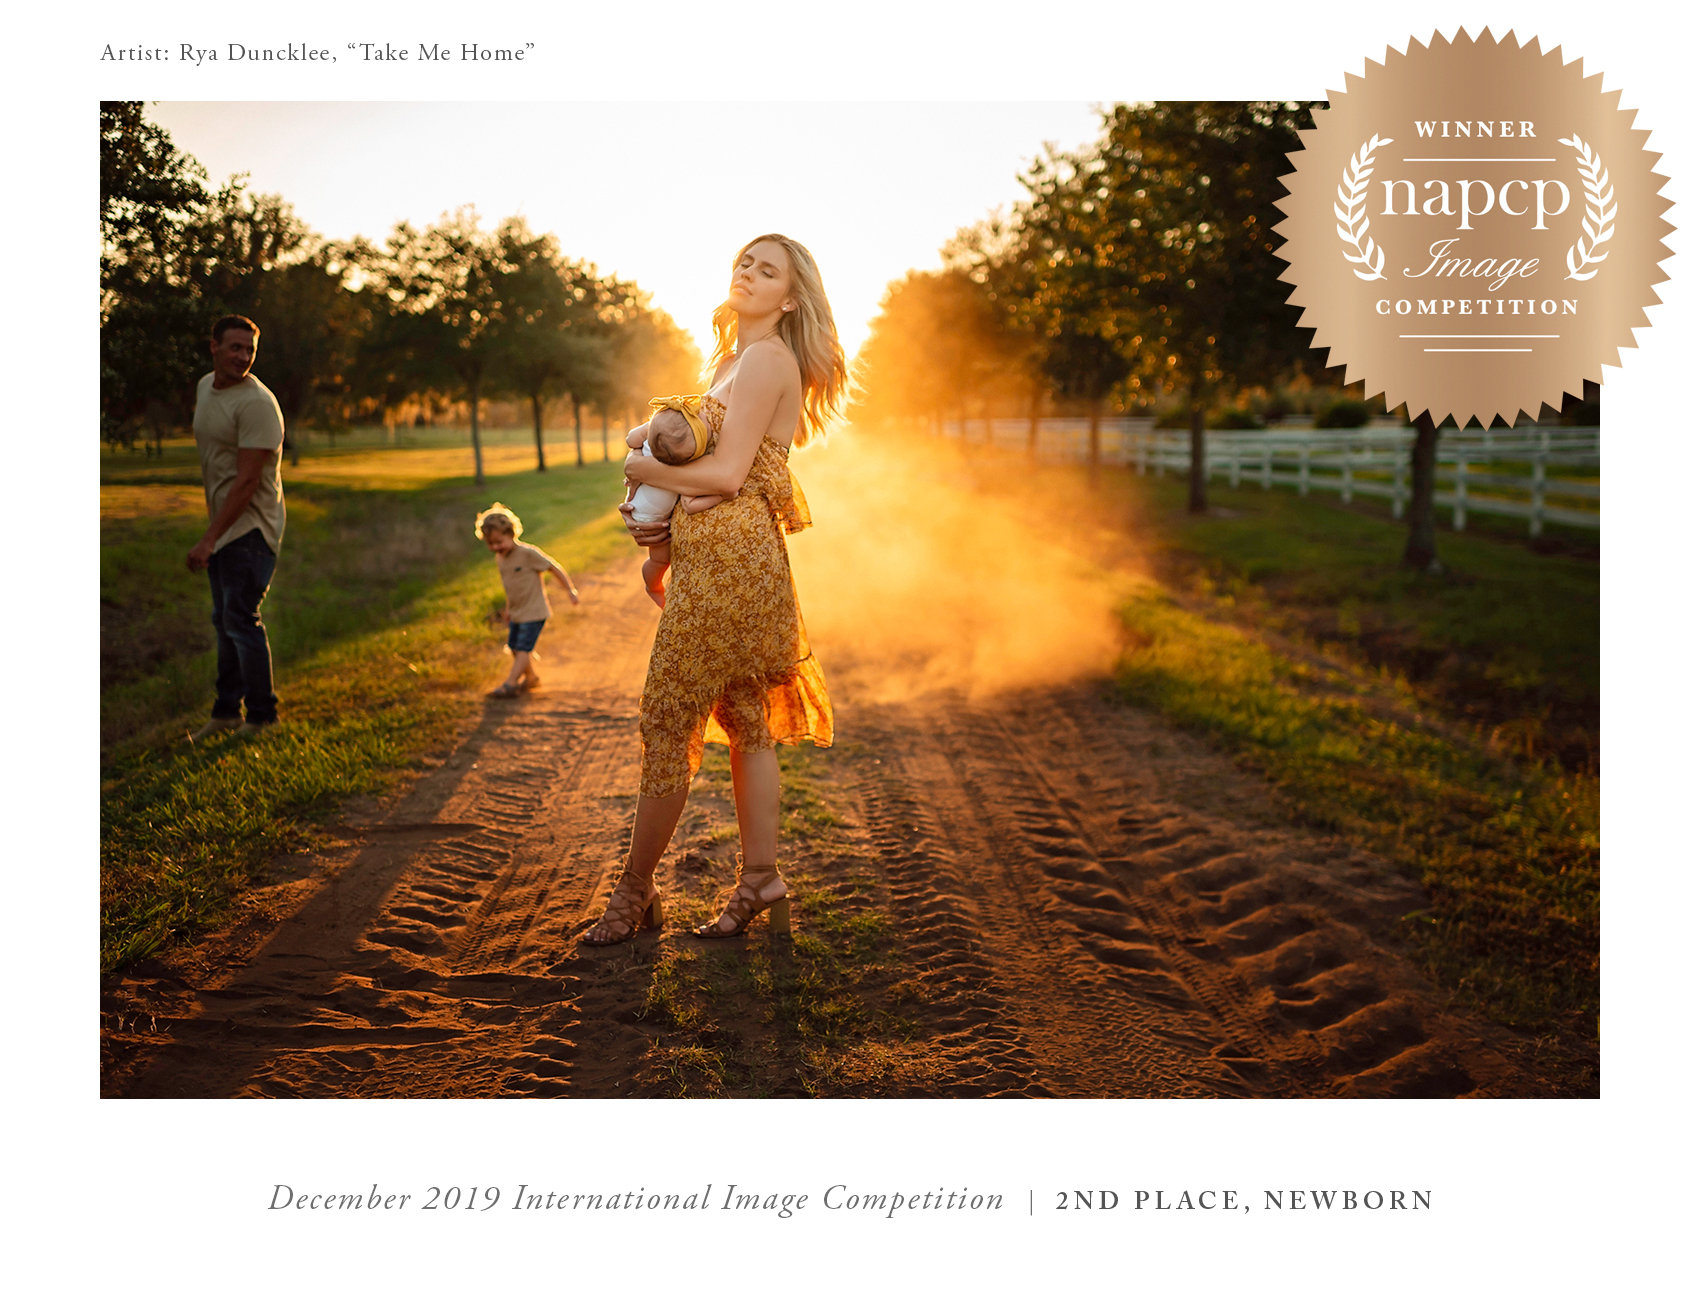 Artist Rya Duncklee, Winner NAPCP Image Competition, December 2019 International Image Competition, Ryan Lochte, Ryan Lochte wife, Ryan Lochte kids